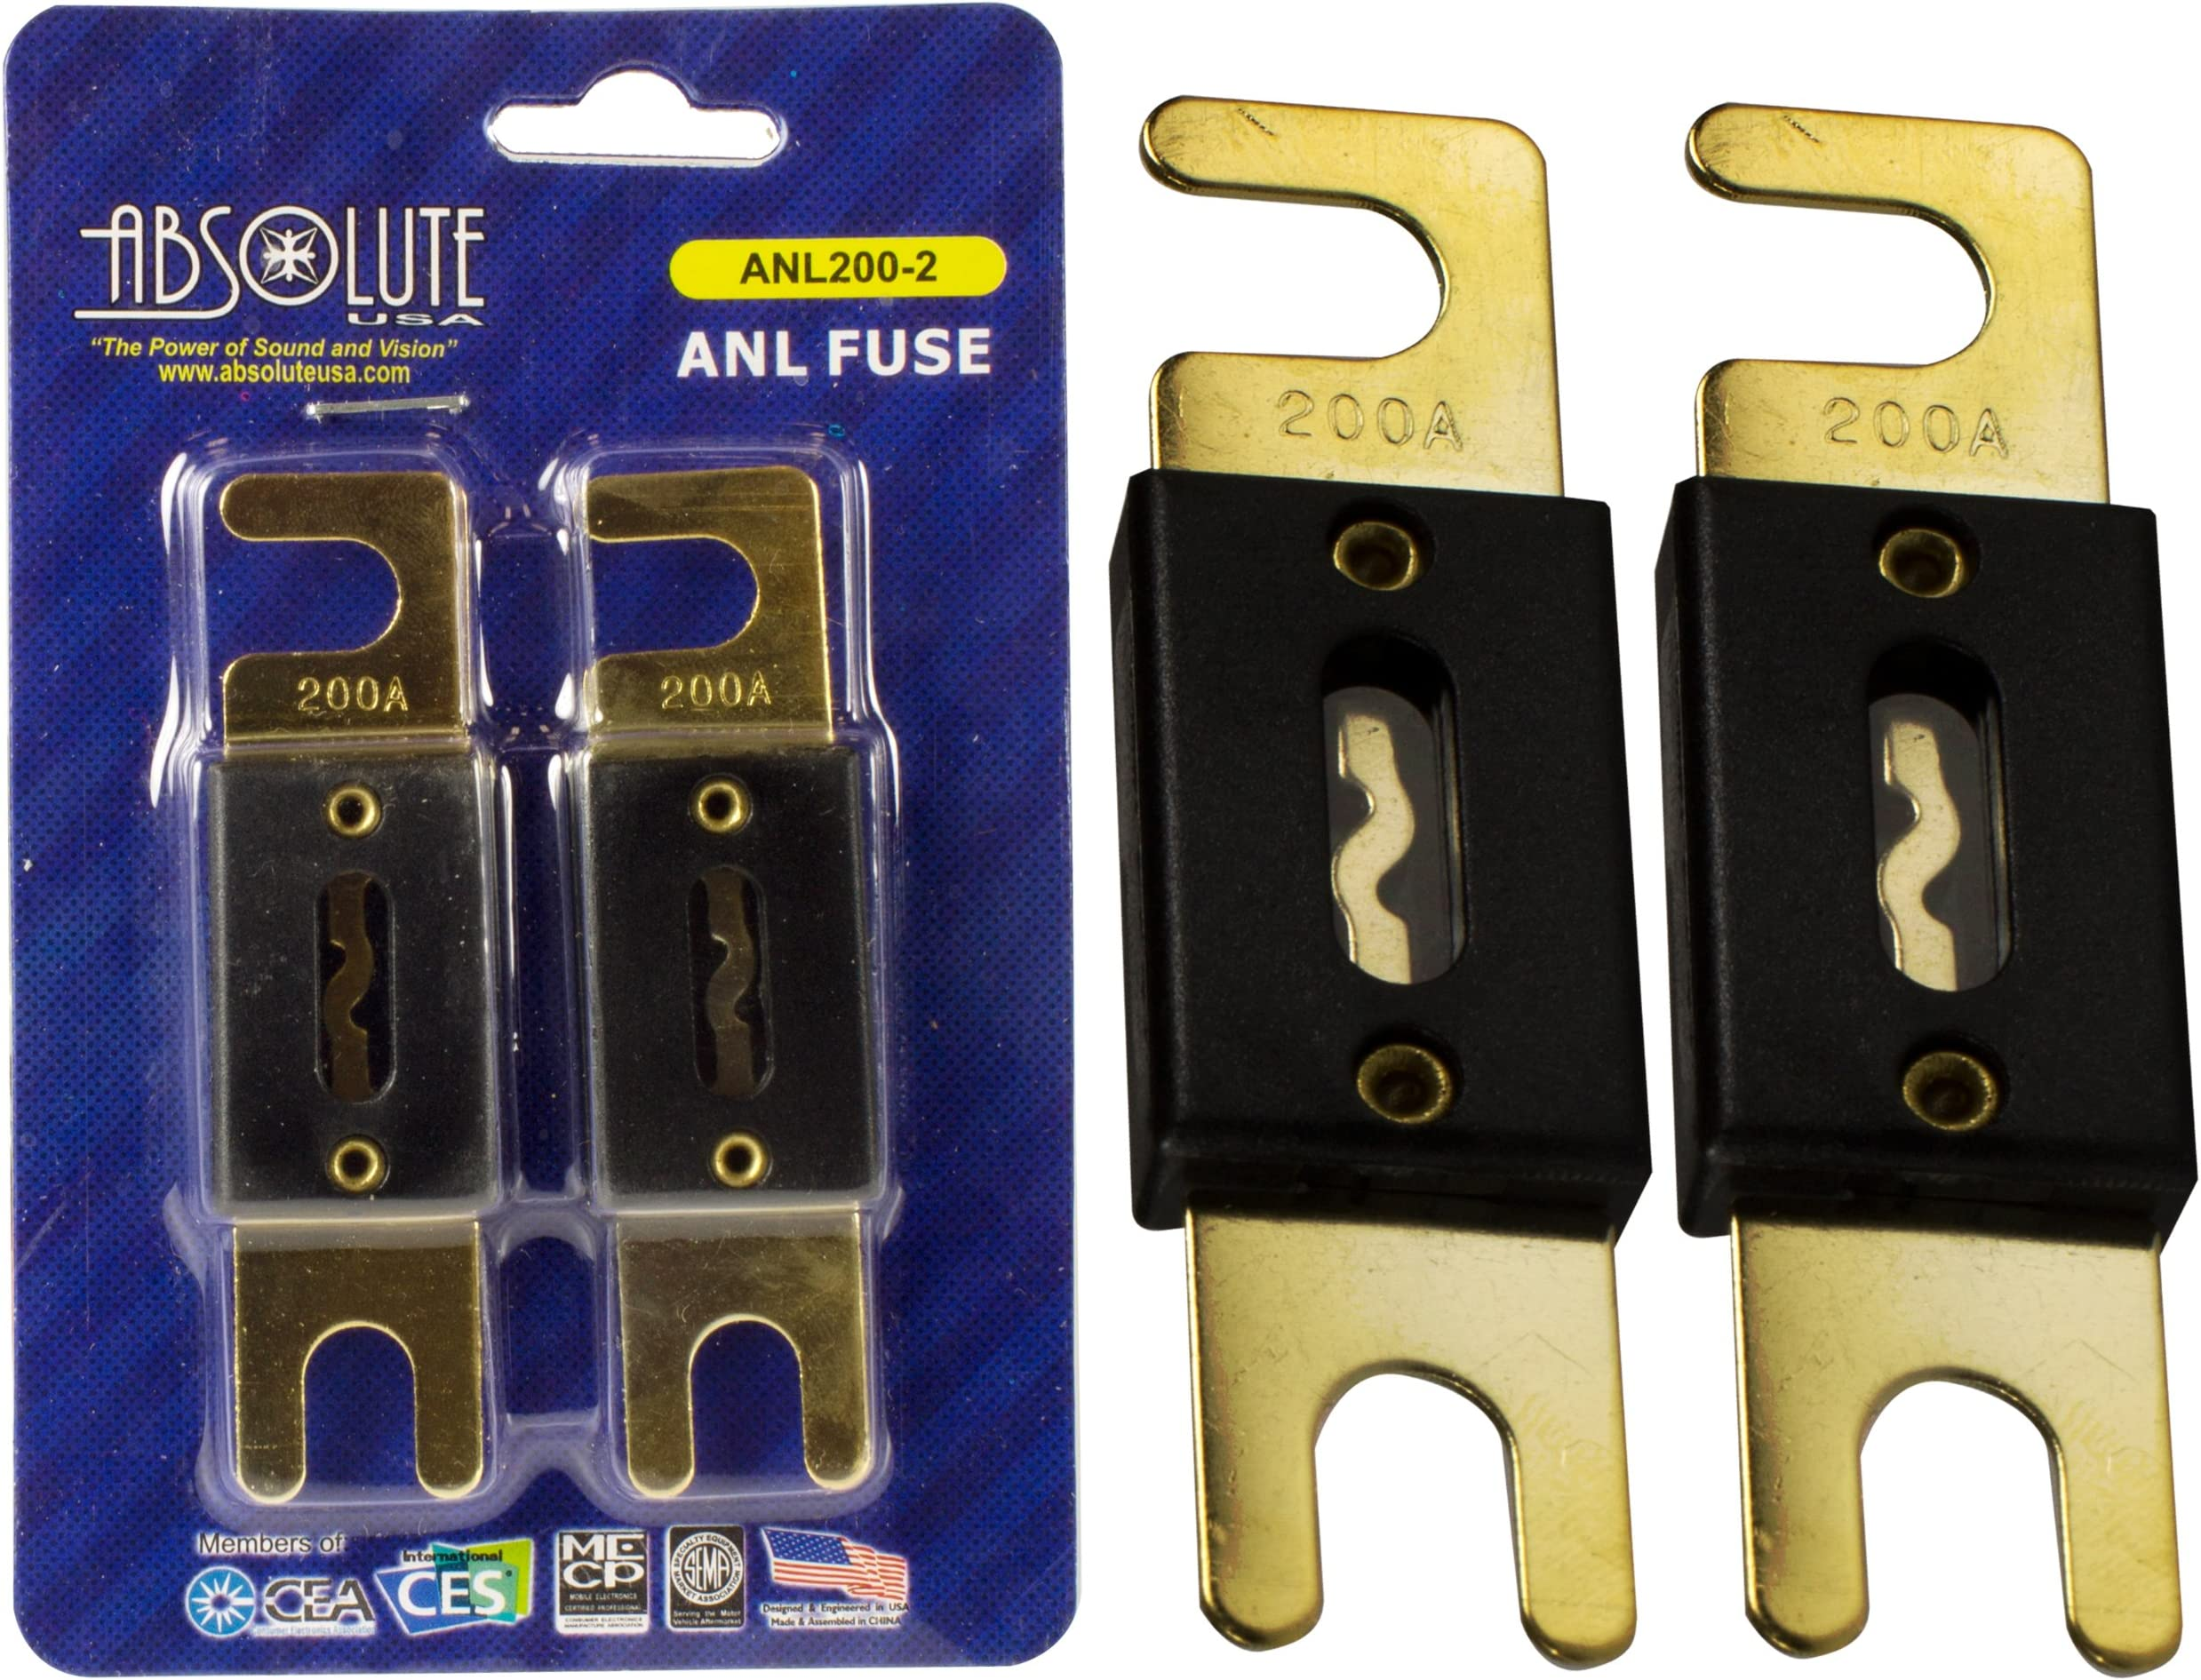 fuse box buy spares for bmw 8 series fuses all wiring diagram  Fuse Box Buy Spares For Bmw 8 Series Fuses #6